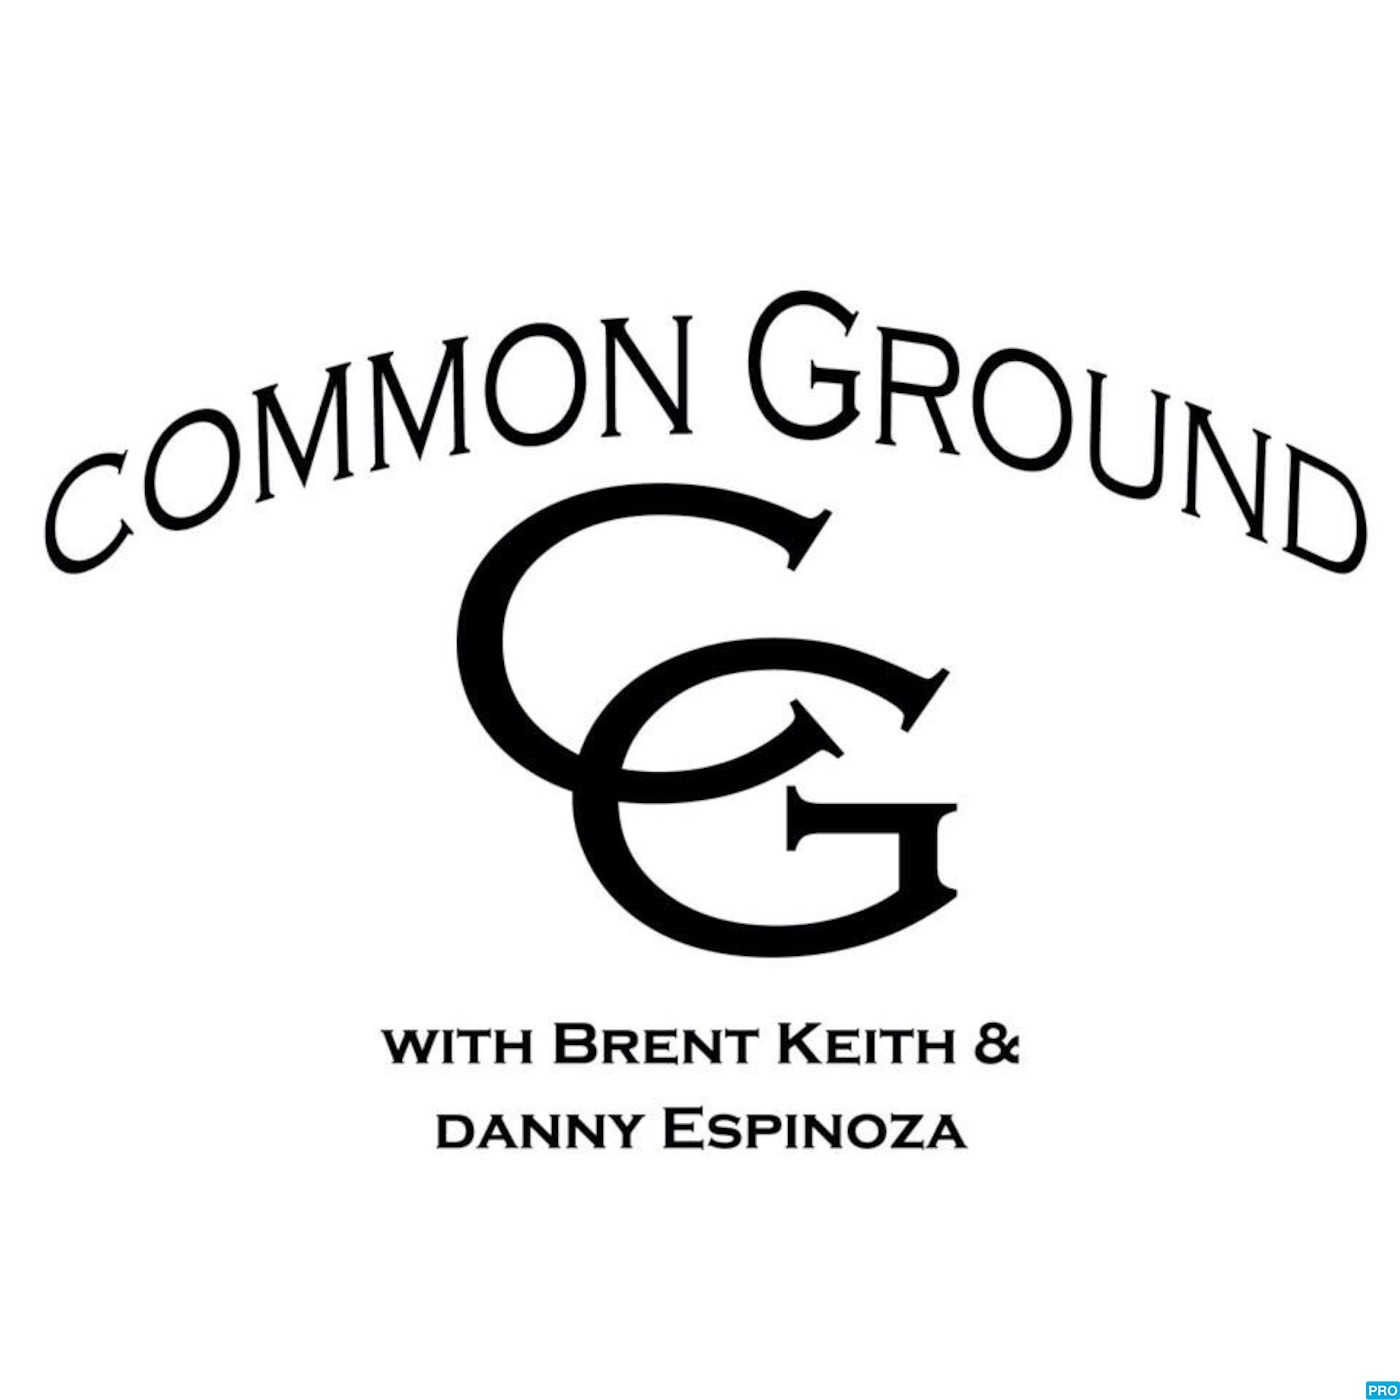 Common Ground with Brent Keith & Danny Espinoza